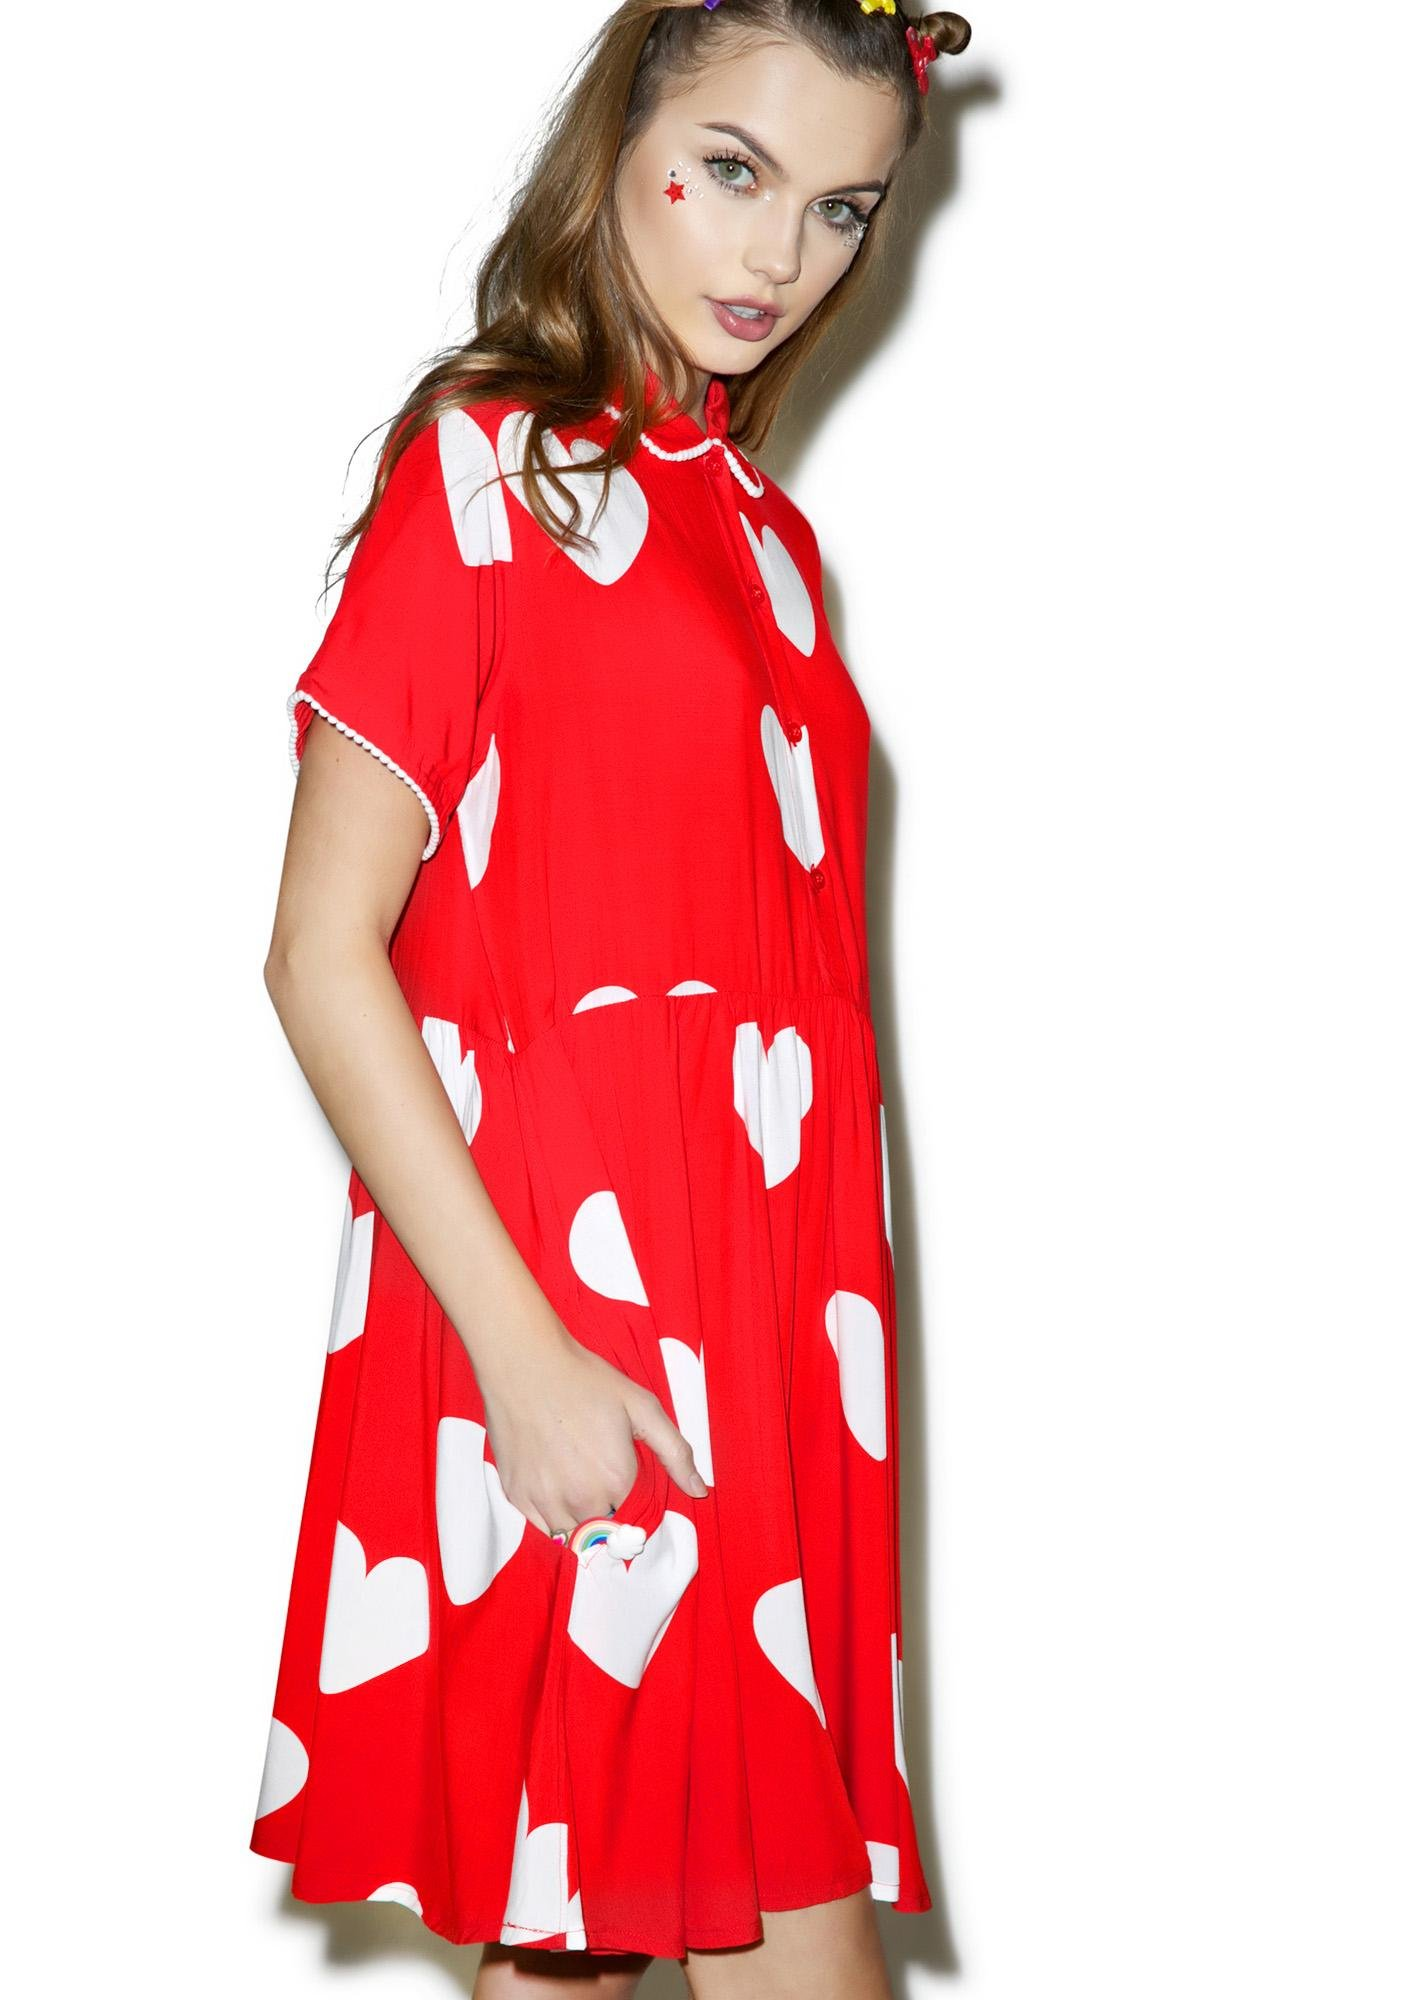 Lazy Oaf Red Heart Dress - Dolls Kill